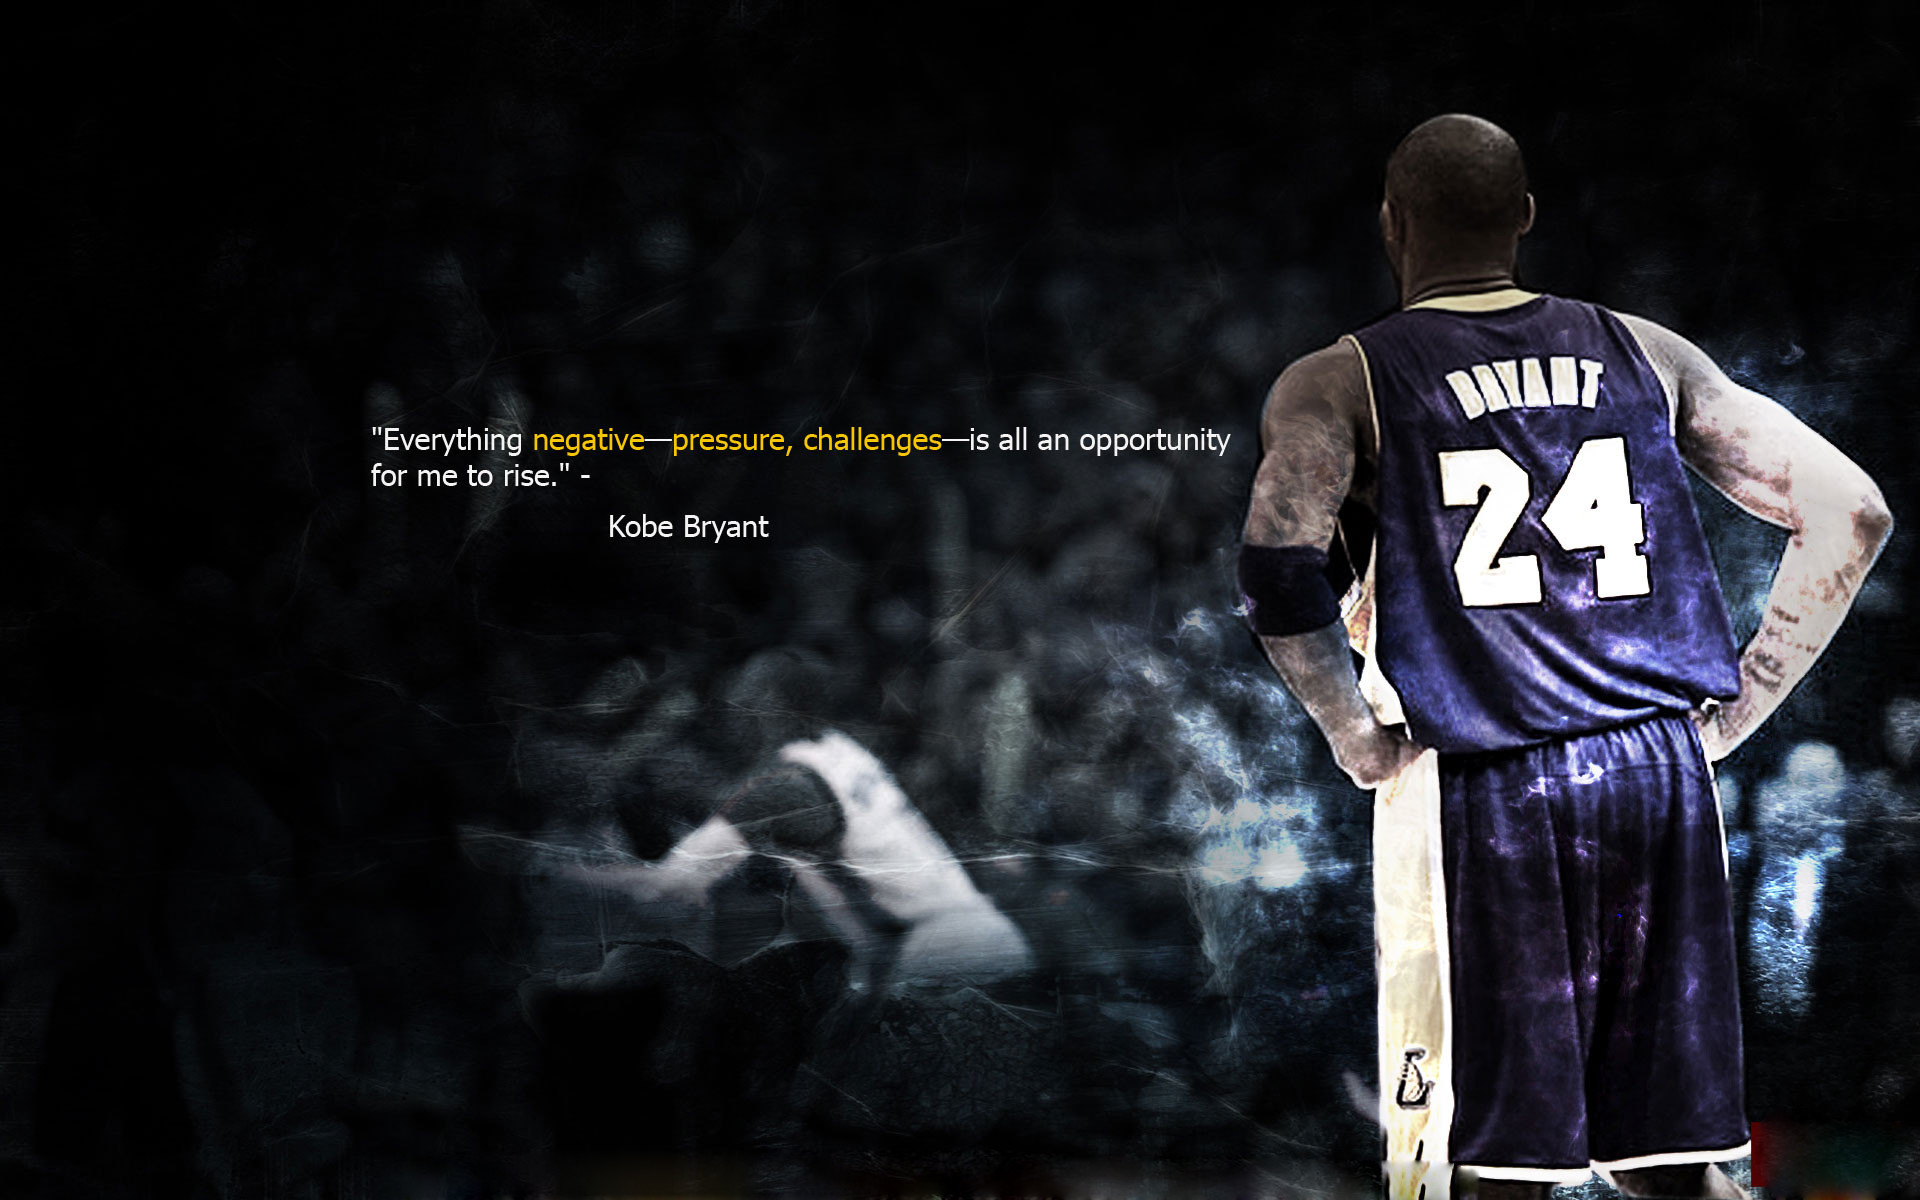 Kobe bryant wallpaper hd 2018 71 images kobe bryant wallpapers hd background voltagebd Gallery